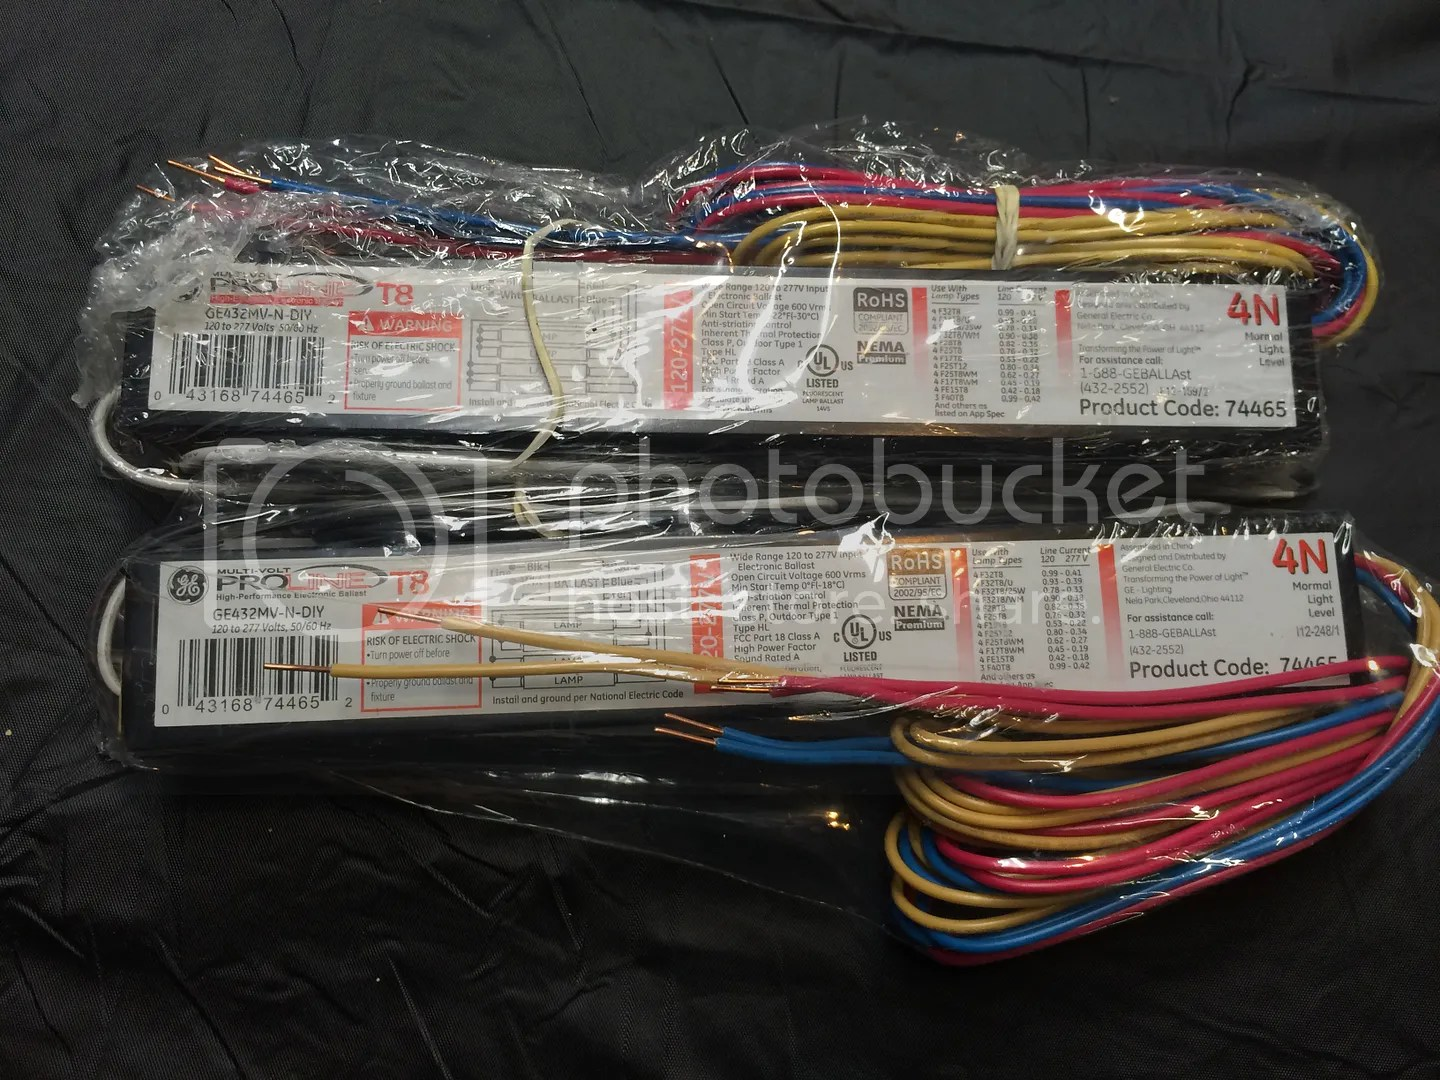 ge proline t8 ballast wiring diagram crossover cable t568b electronic multi volt azbilliards